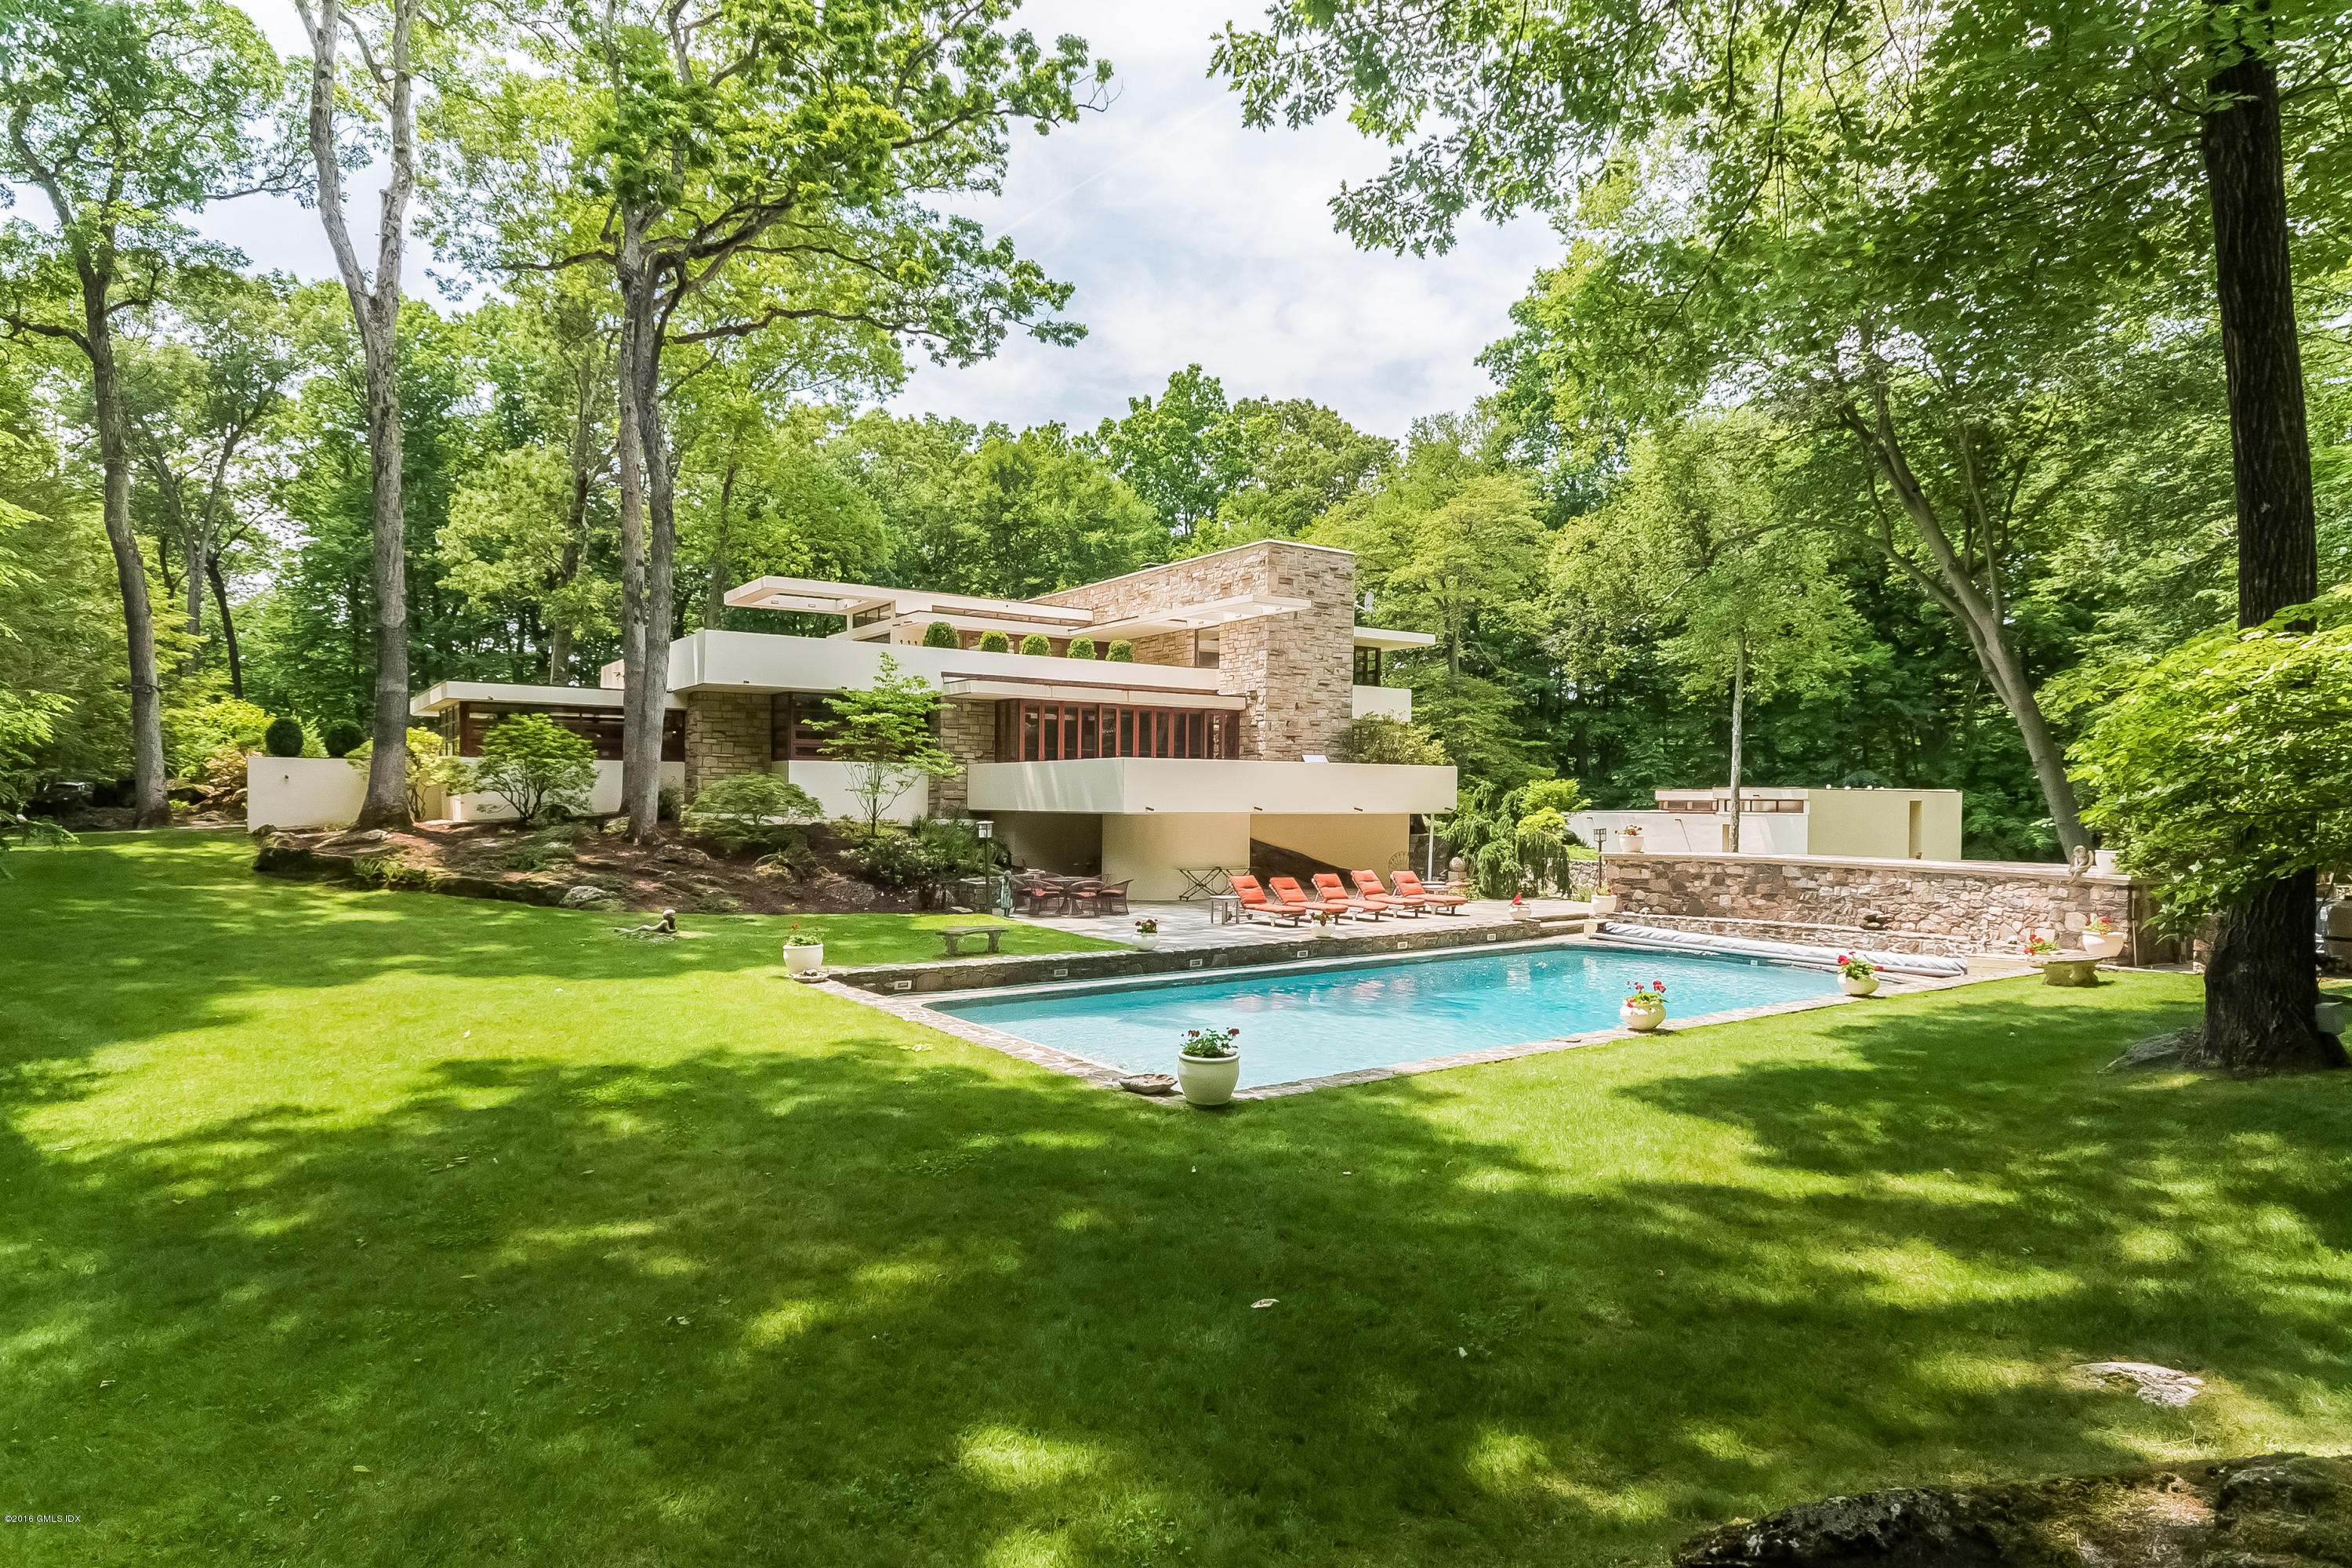 '70s Fallingwater-inspired home asks $3.5M